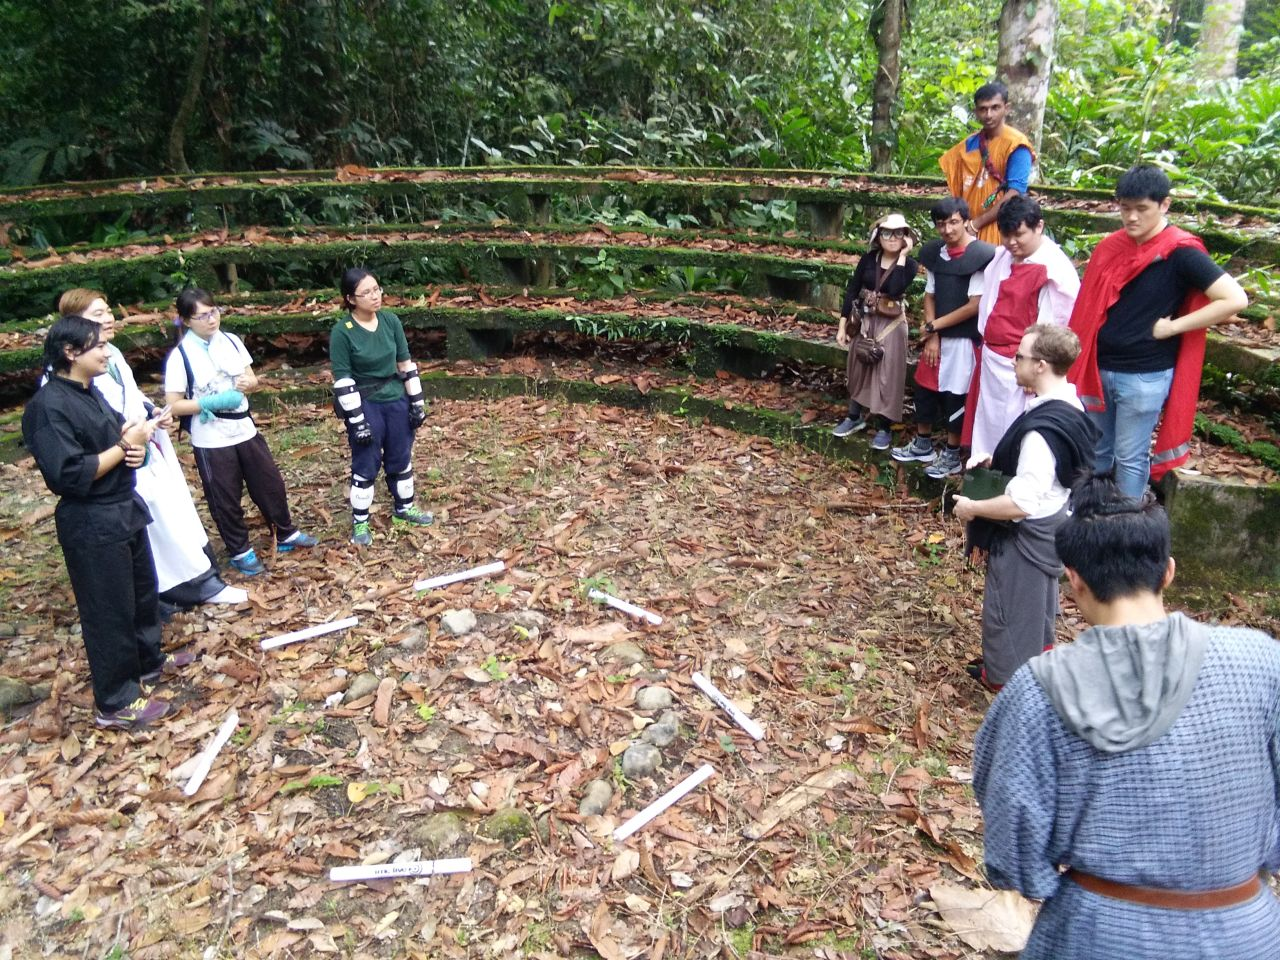 Maelstrom LARP, RPG Role Over Play Dead